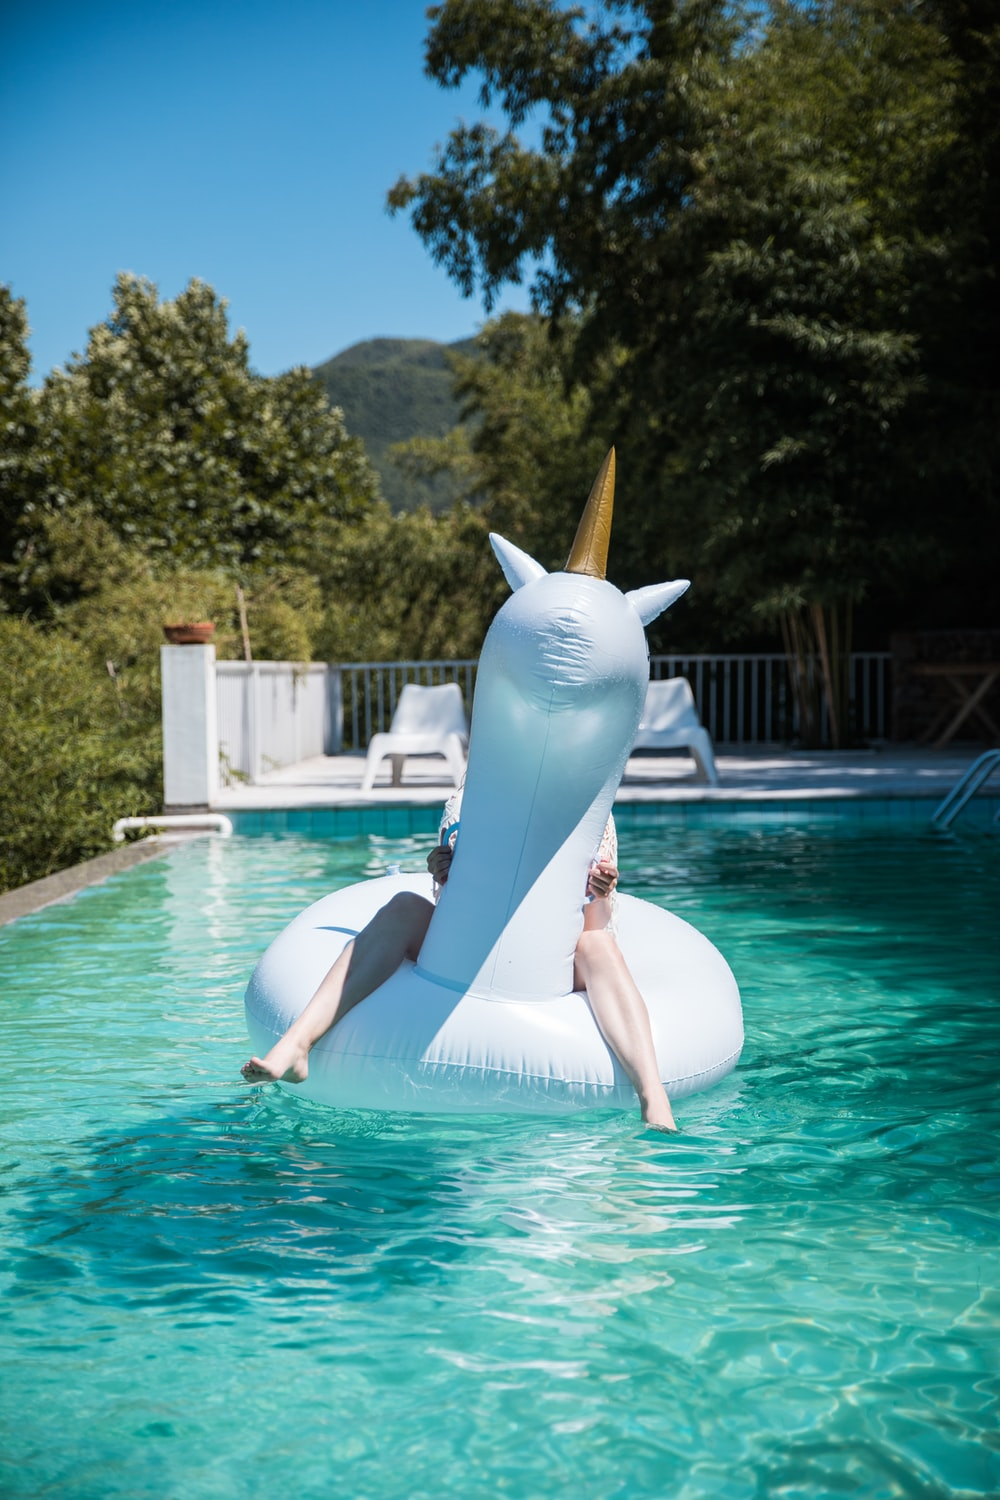 person riding unicorn inflatable ring on body of water